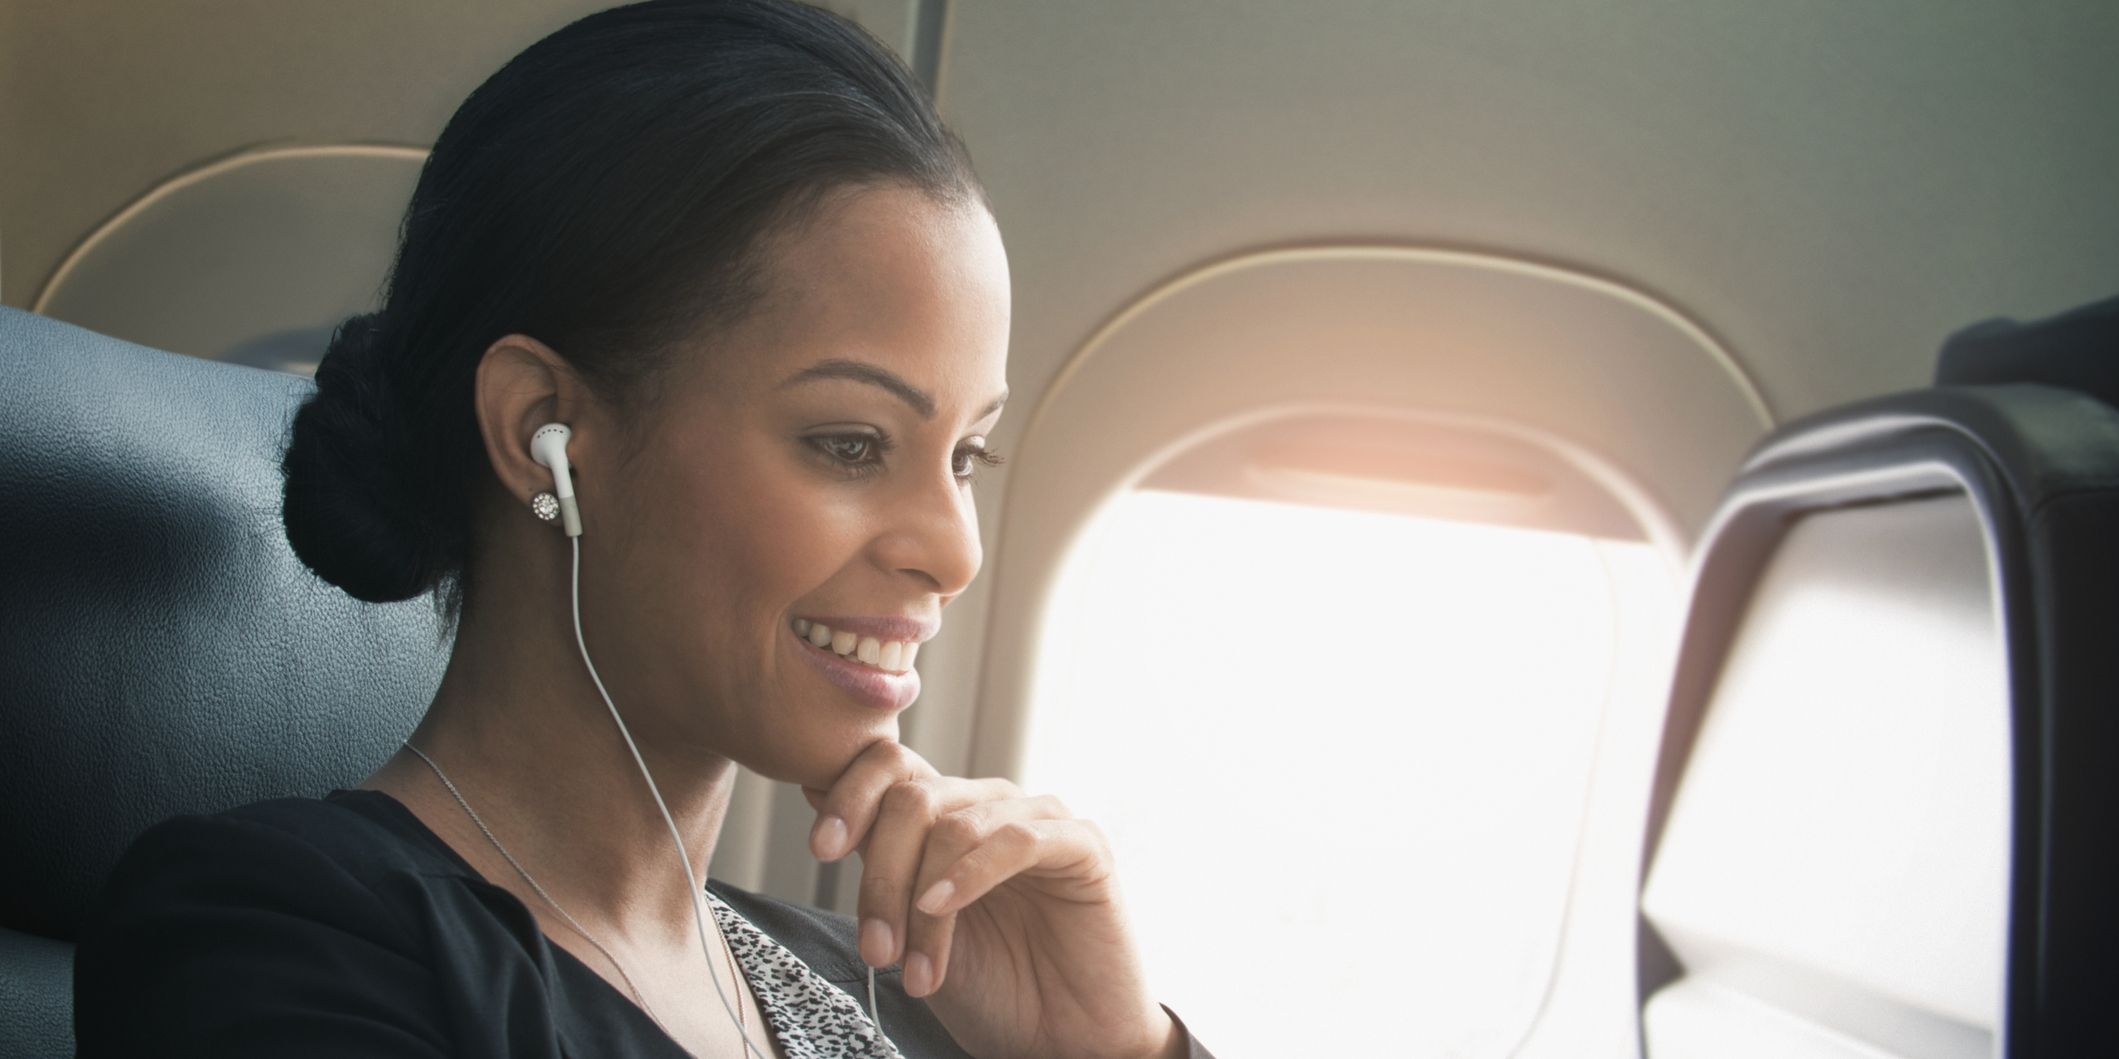 Businesswoman listening to earbuds on airplane